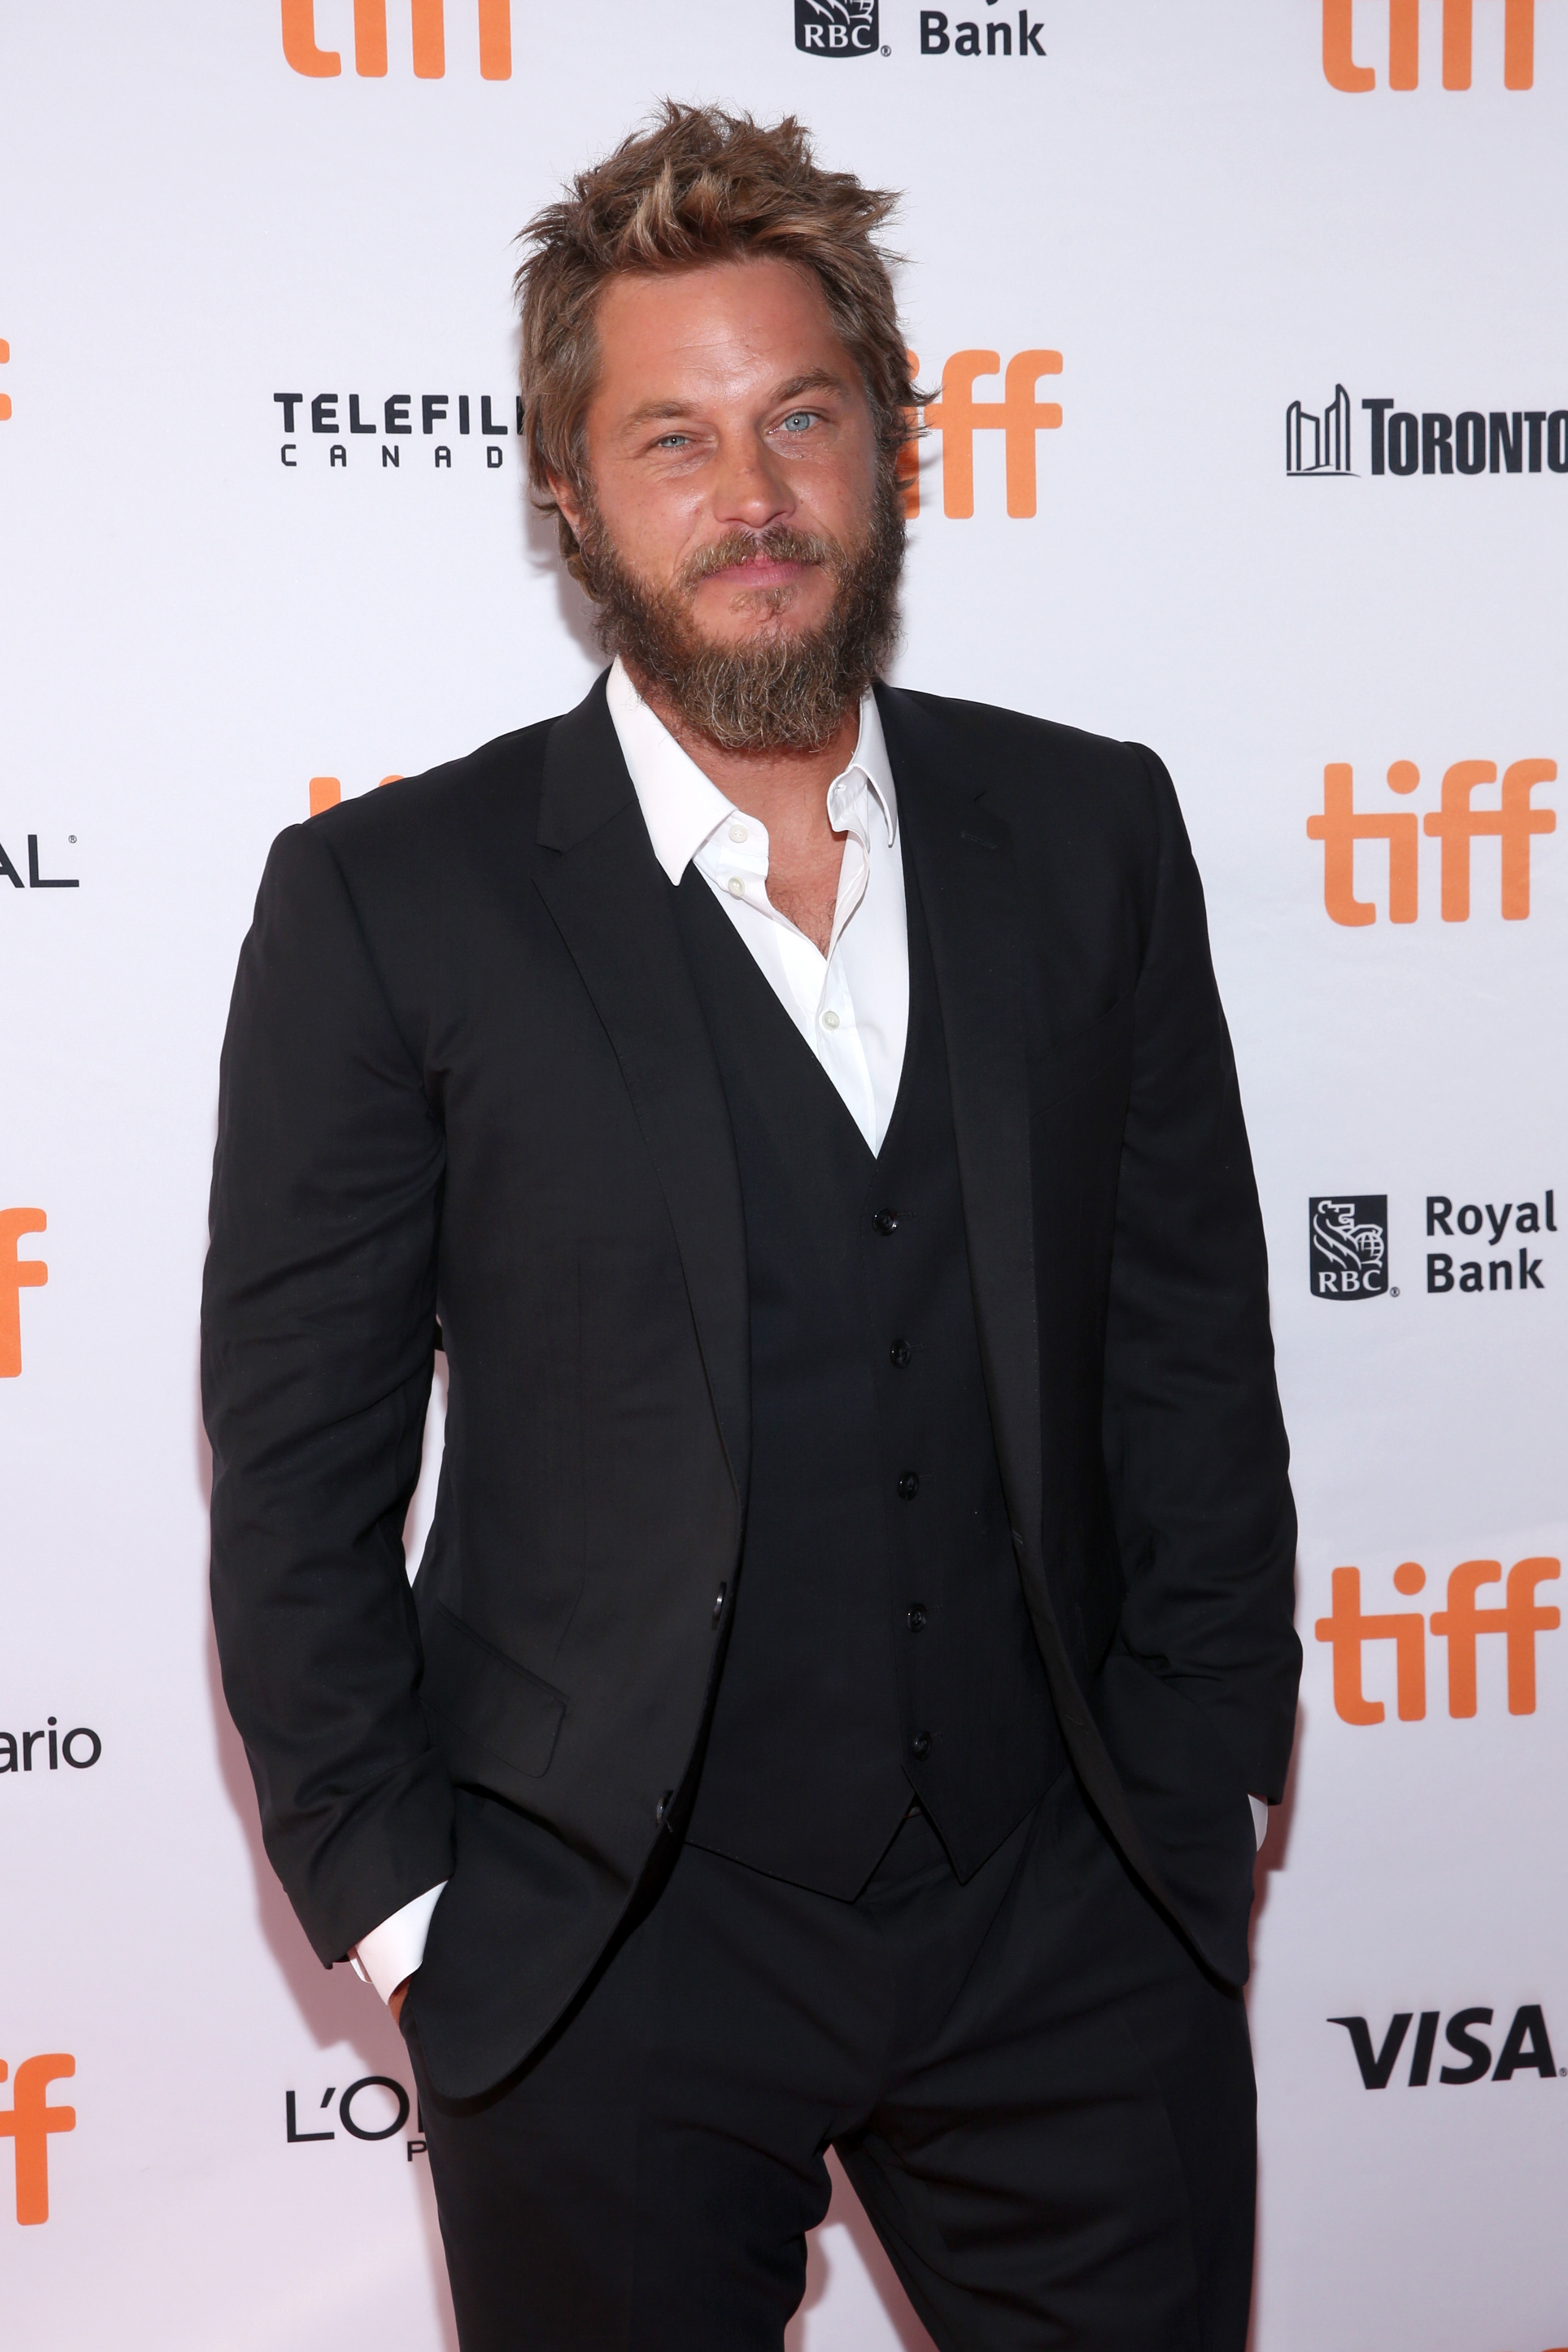 Travis Fimmel attends the 'Lean On Pete' premiere during the 2017 Toronto International Film Festival at The Elgin on September 11, 2017 in Toronto, Canada. (Source: Getty Images)